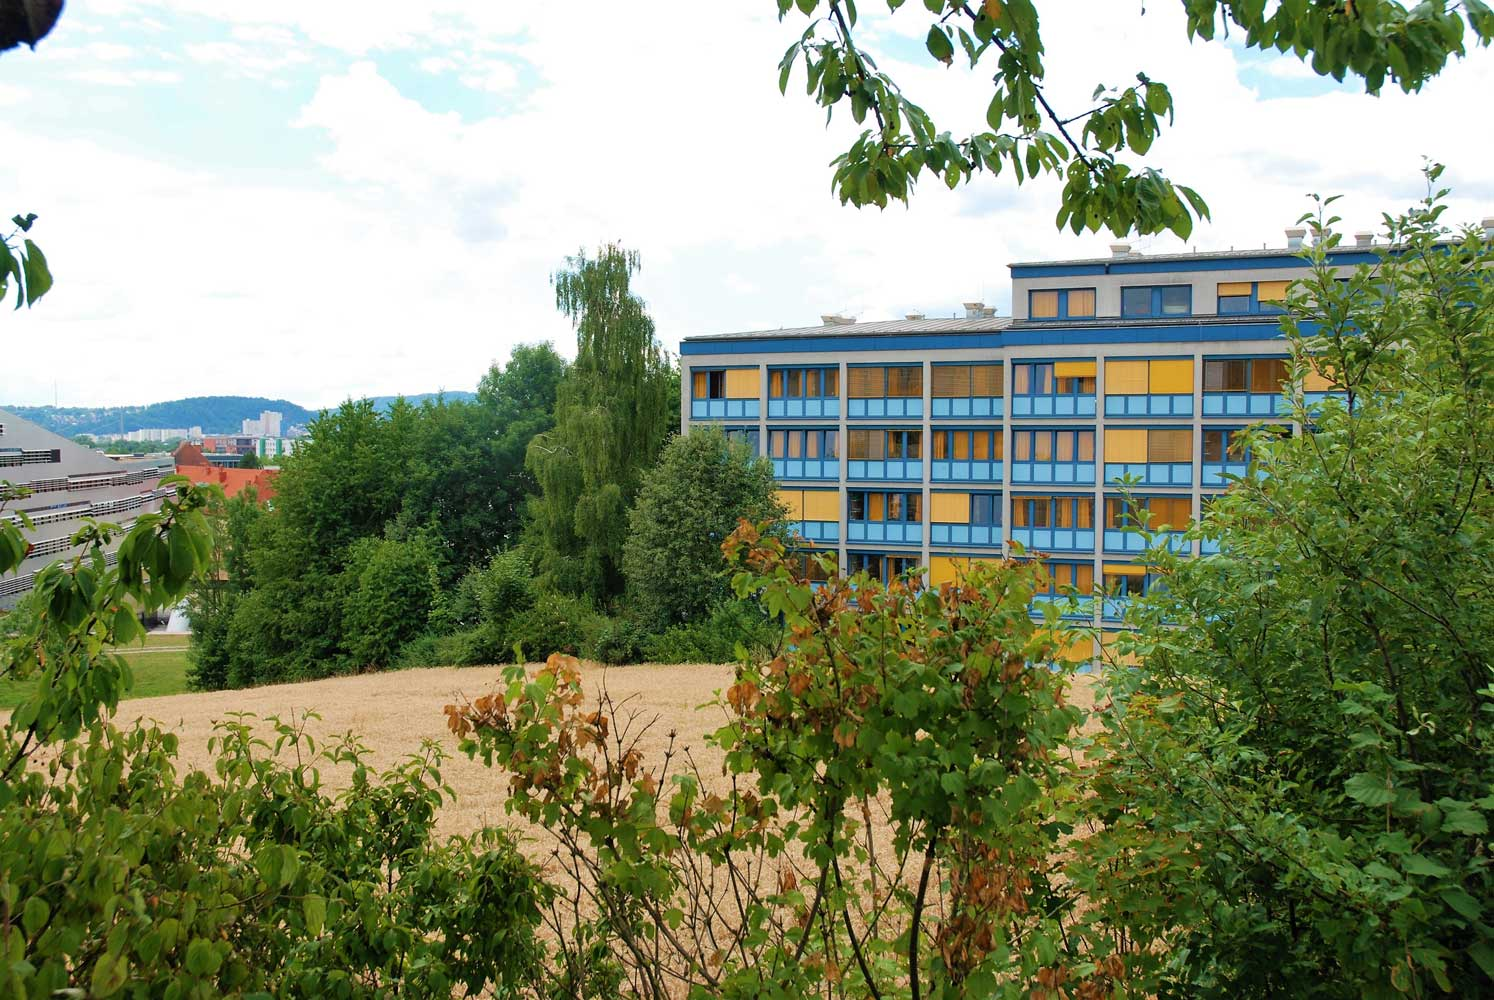 Studentenheim in Linz